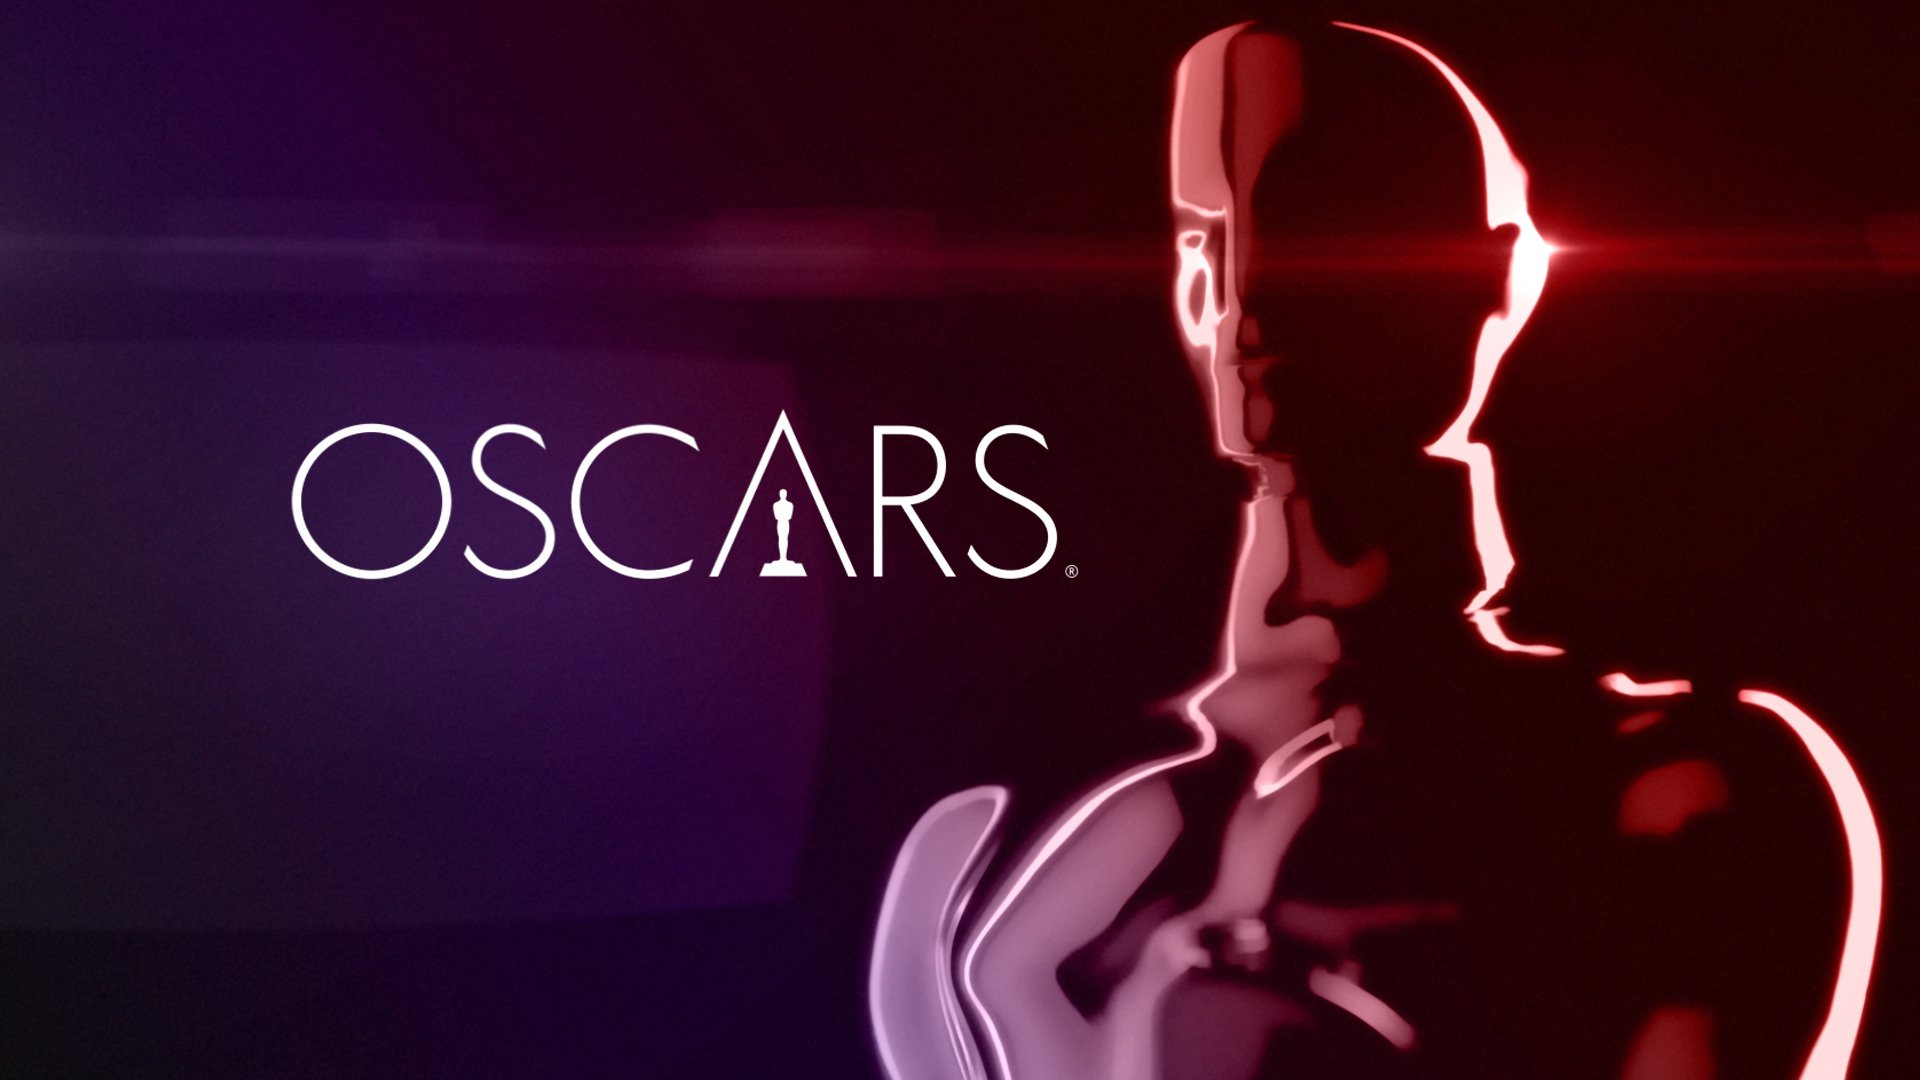 Watch The Oscars 2020 Live Stream Online The Oscars All Access 1920x1080